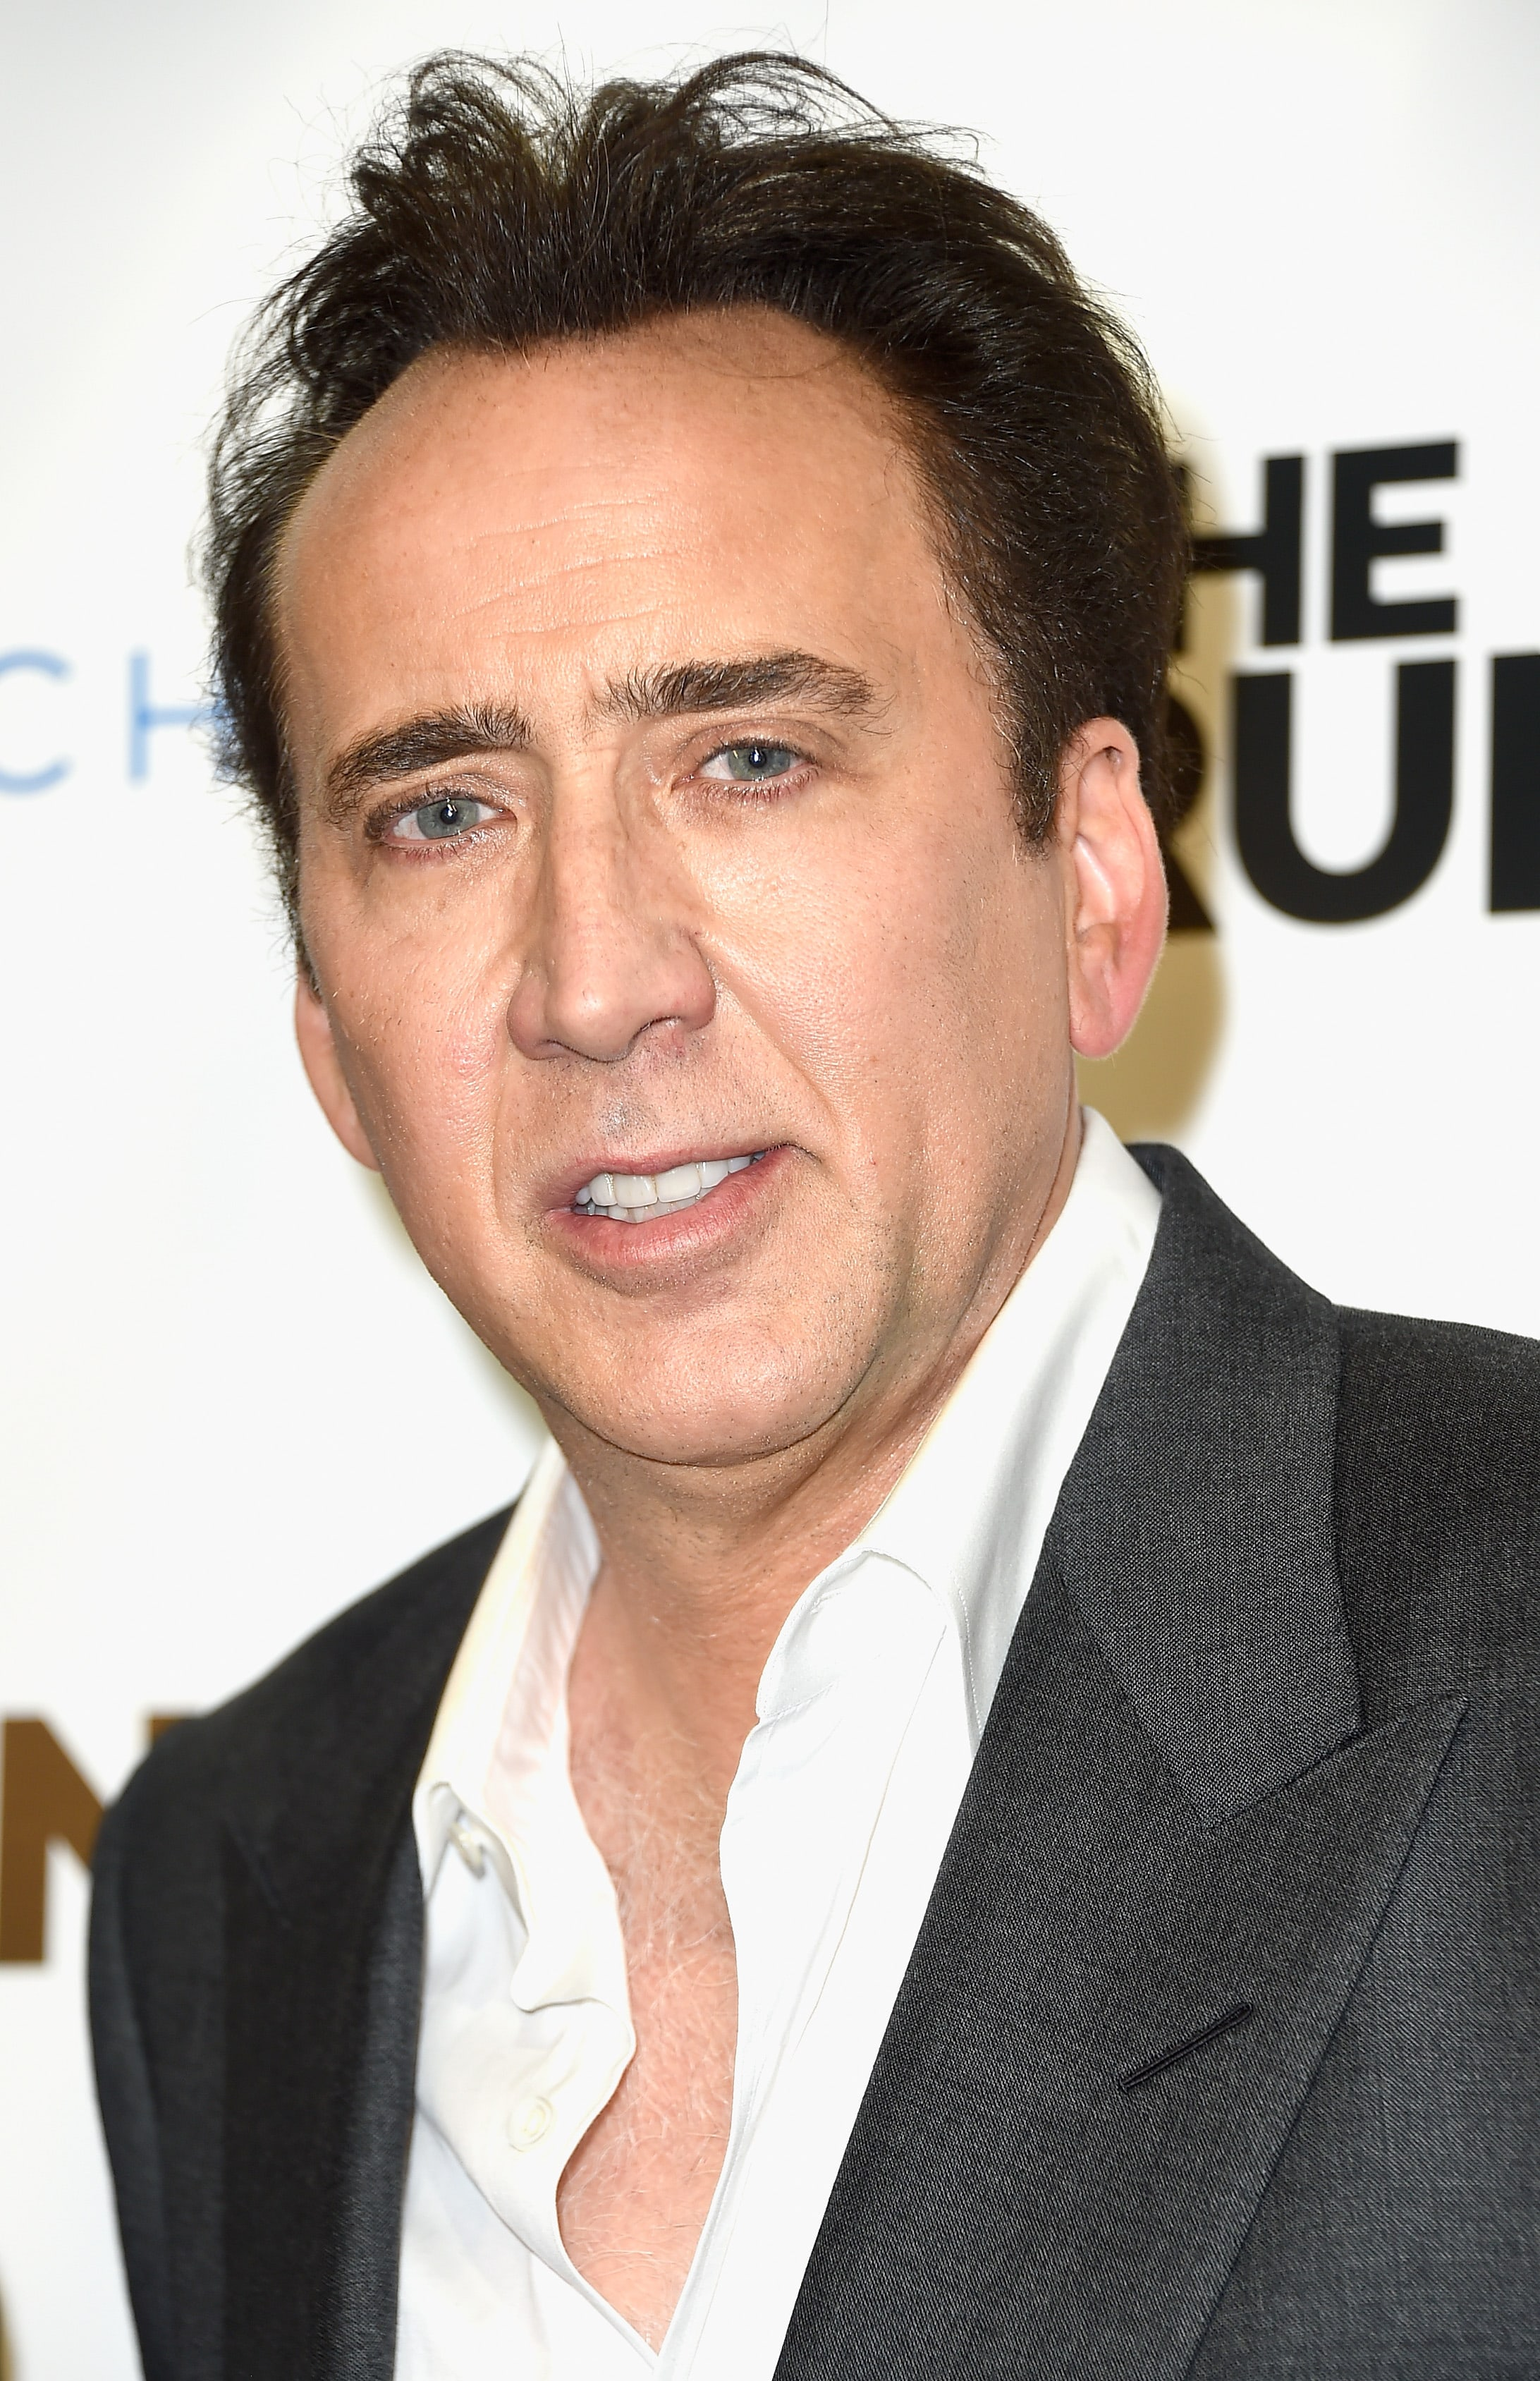 Nicolas Cage Full hd wallpapers